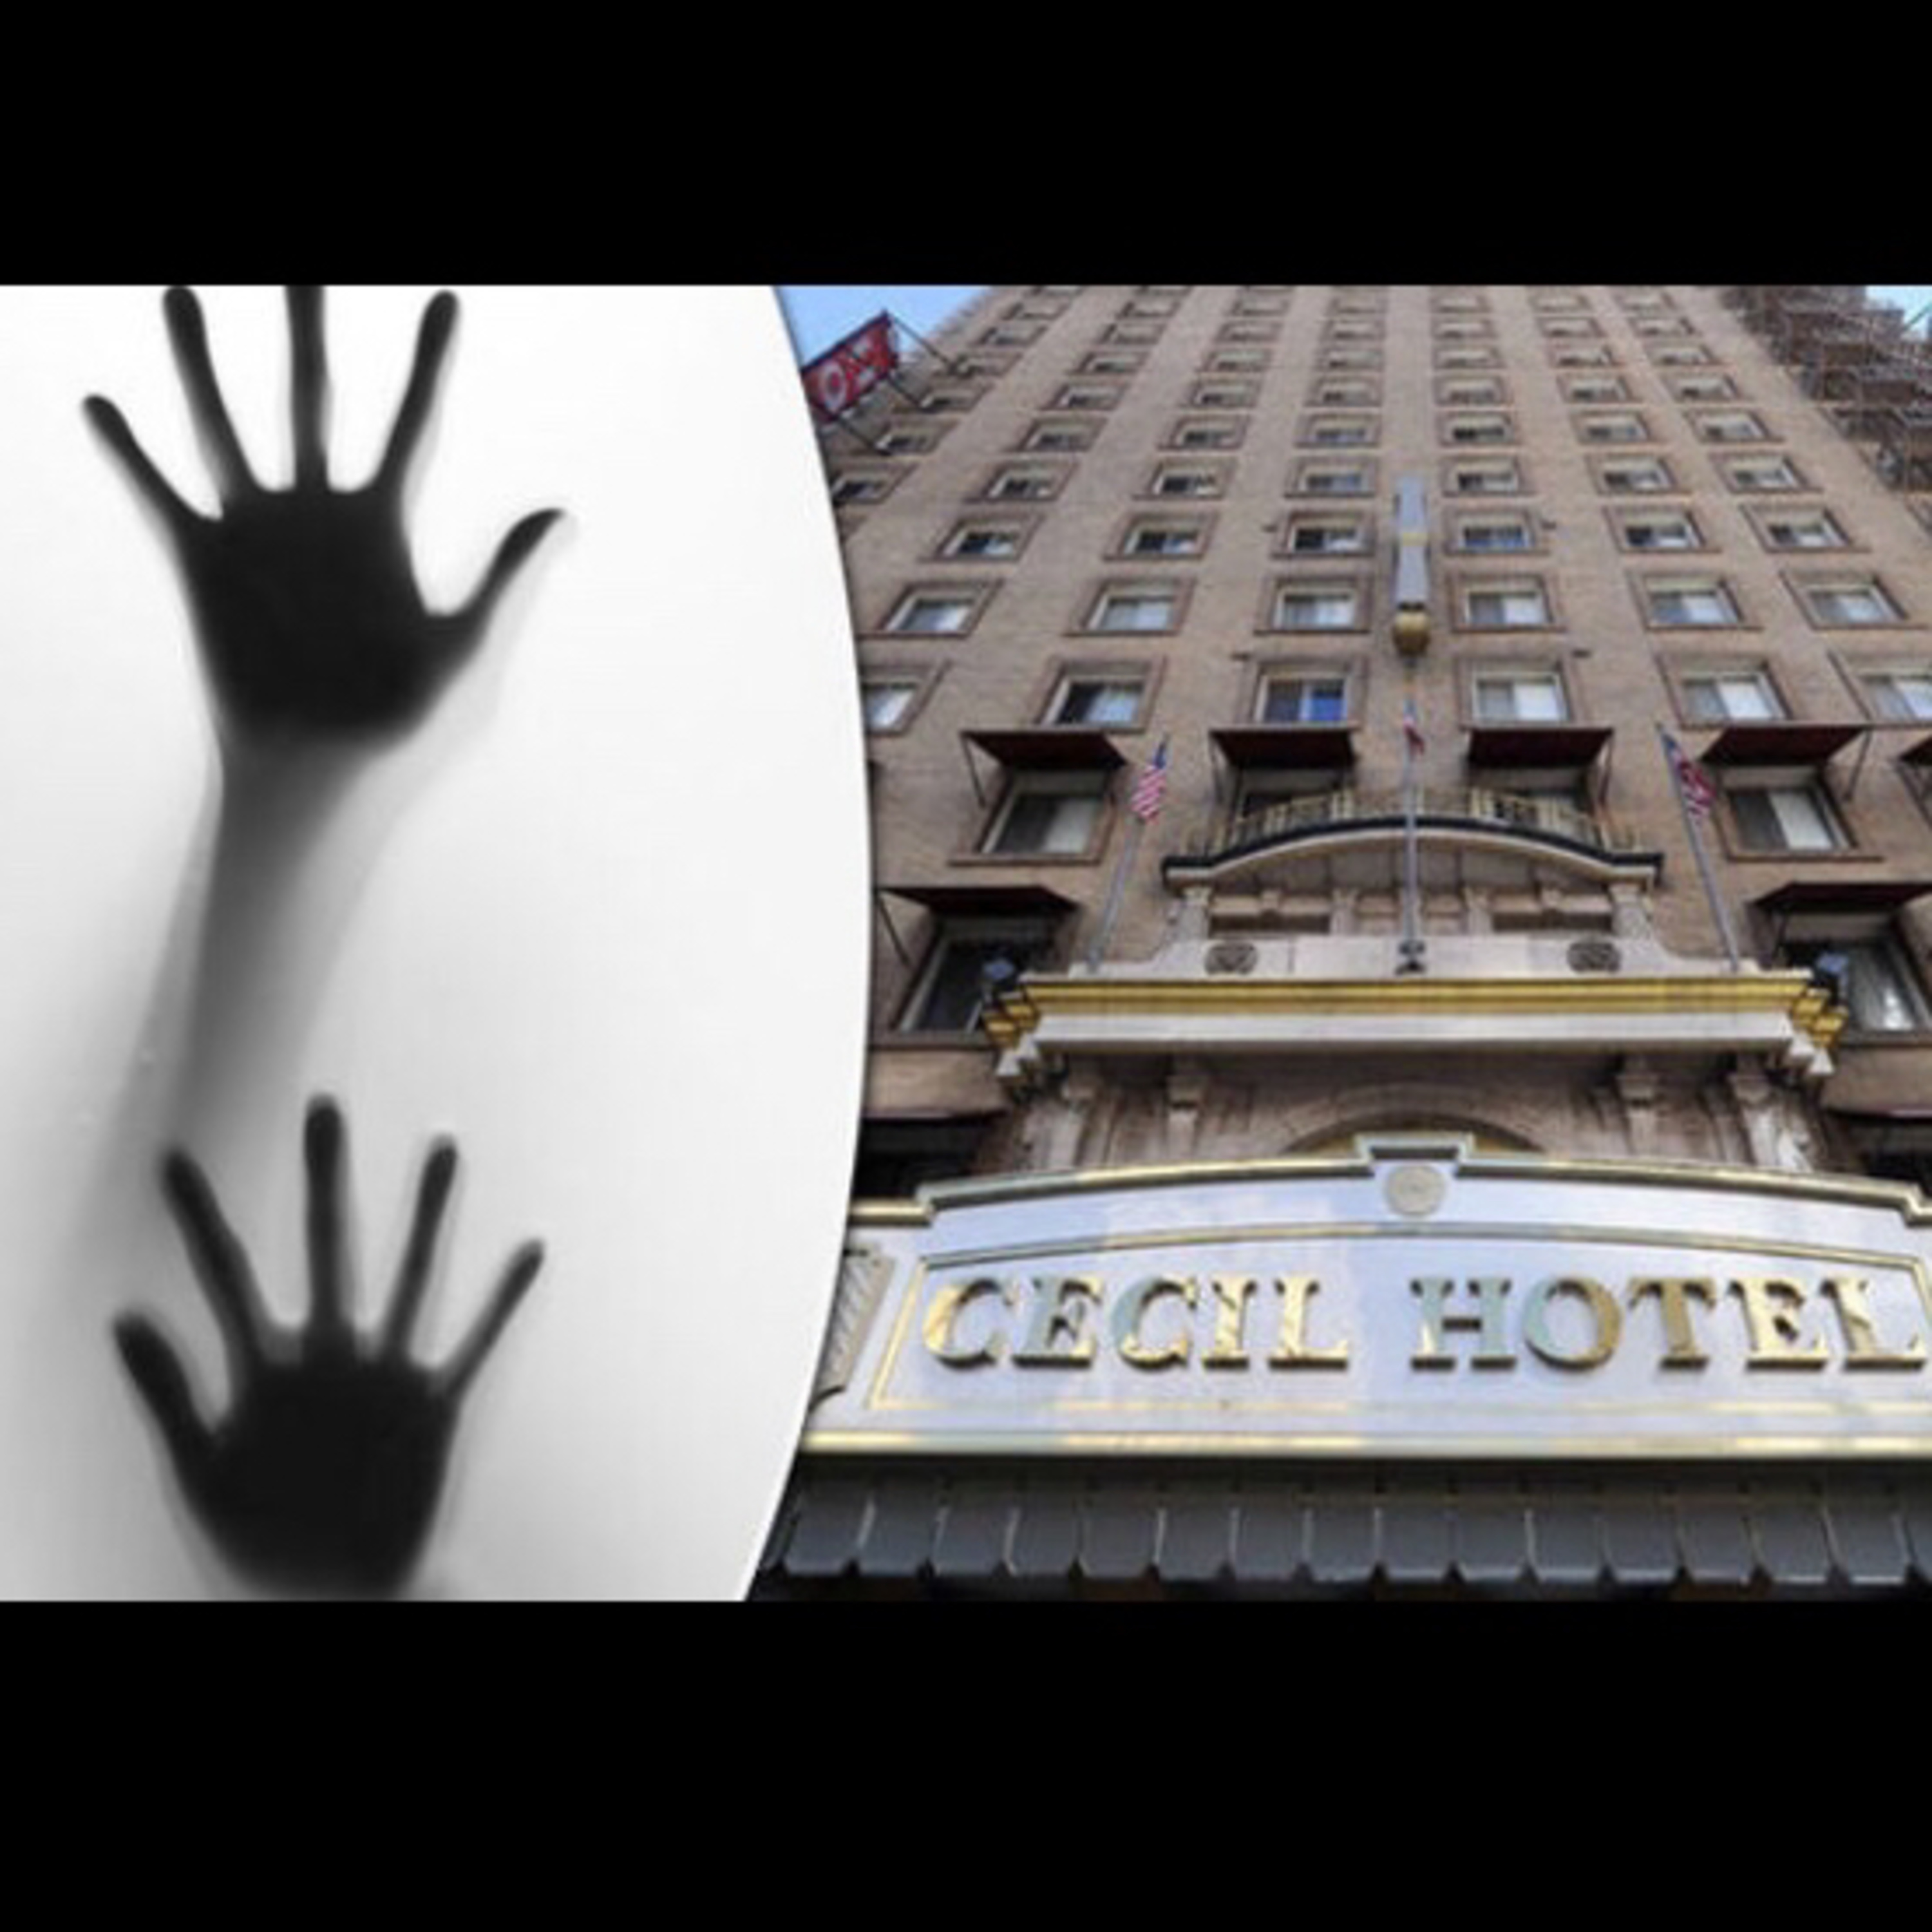 THE DARK HISTORY BEHIND THE CECIL HOTEL